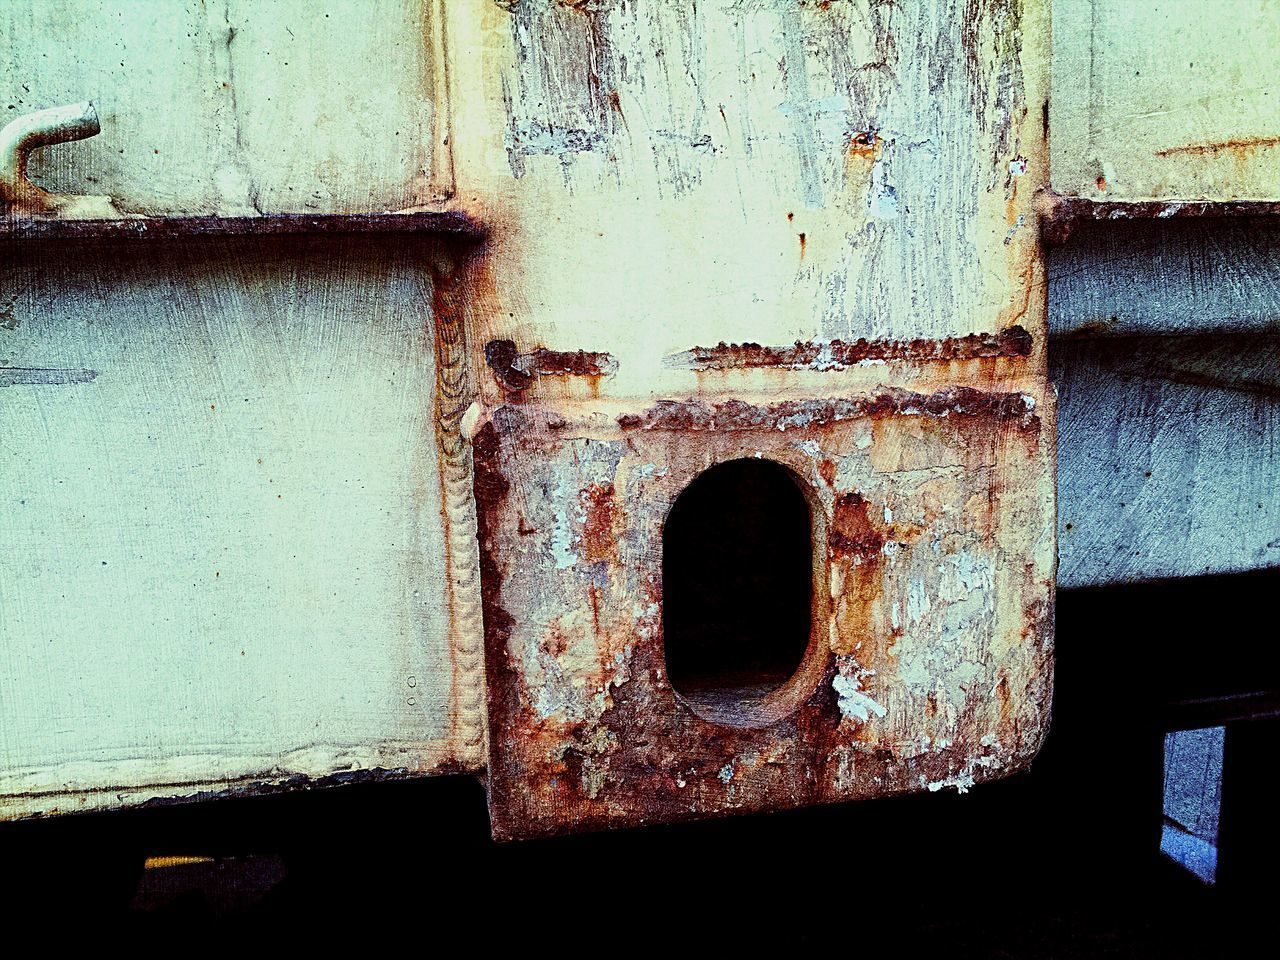 old, metal, rusty, no people, weathered, architecture, built structure, day, close-up, decline, deterioration, damaged, run-down, hole, abandoned, full frame, outdoors, bad condition, safety, entrance